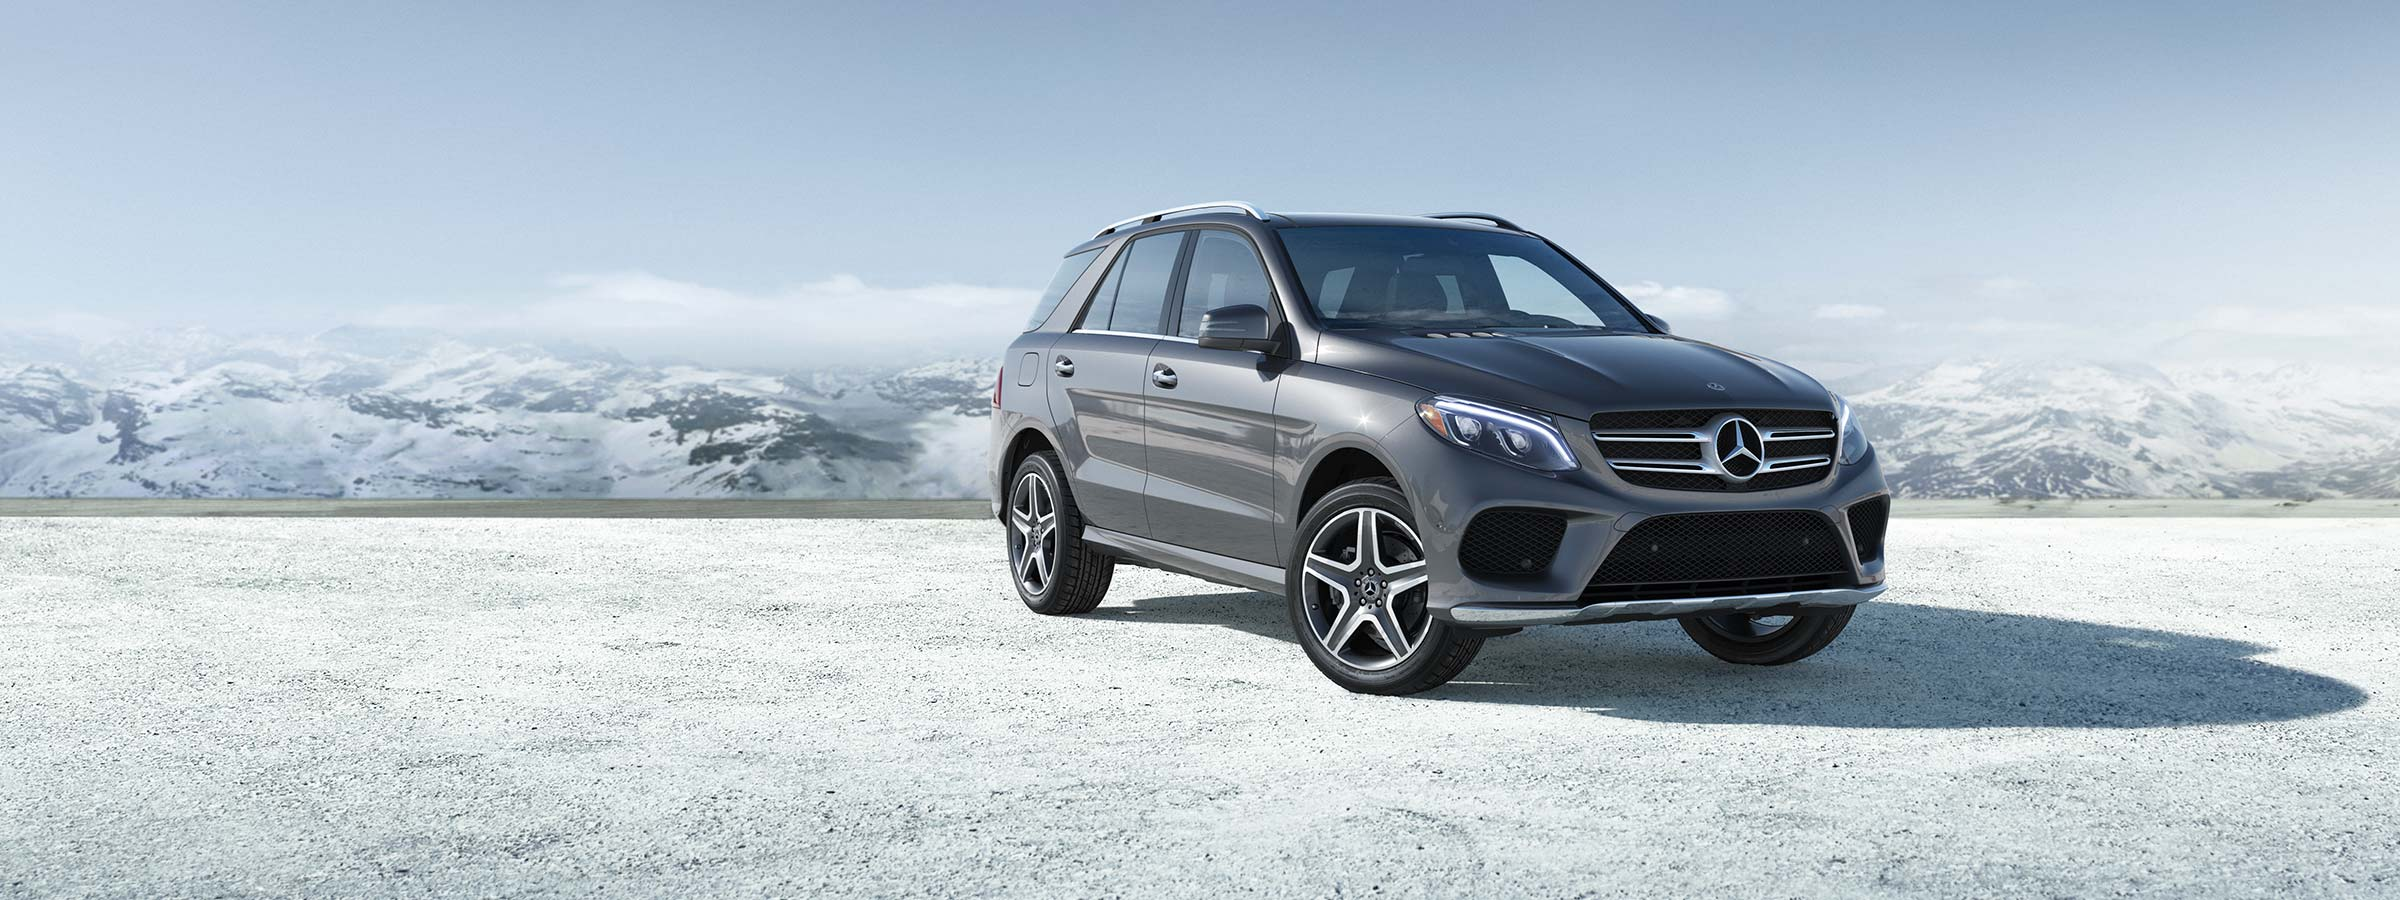 Gle Luxury Suv Mercedes Benz Usa